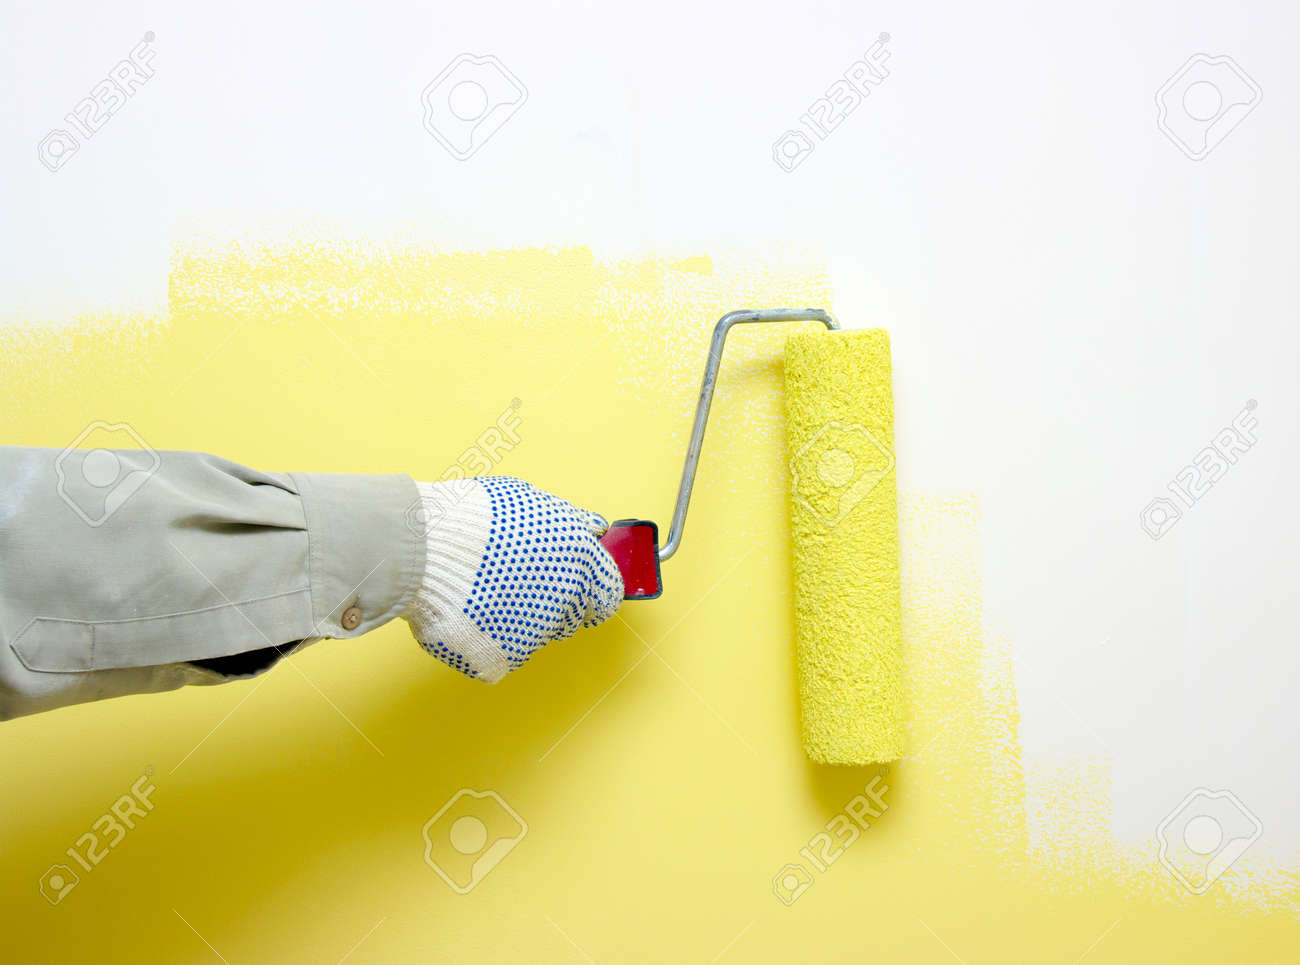 Hand Painting A White Wall With A Paint Roller Stock Photo, Picture ...